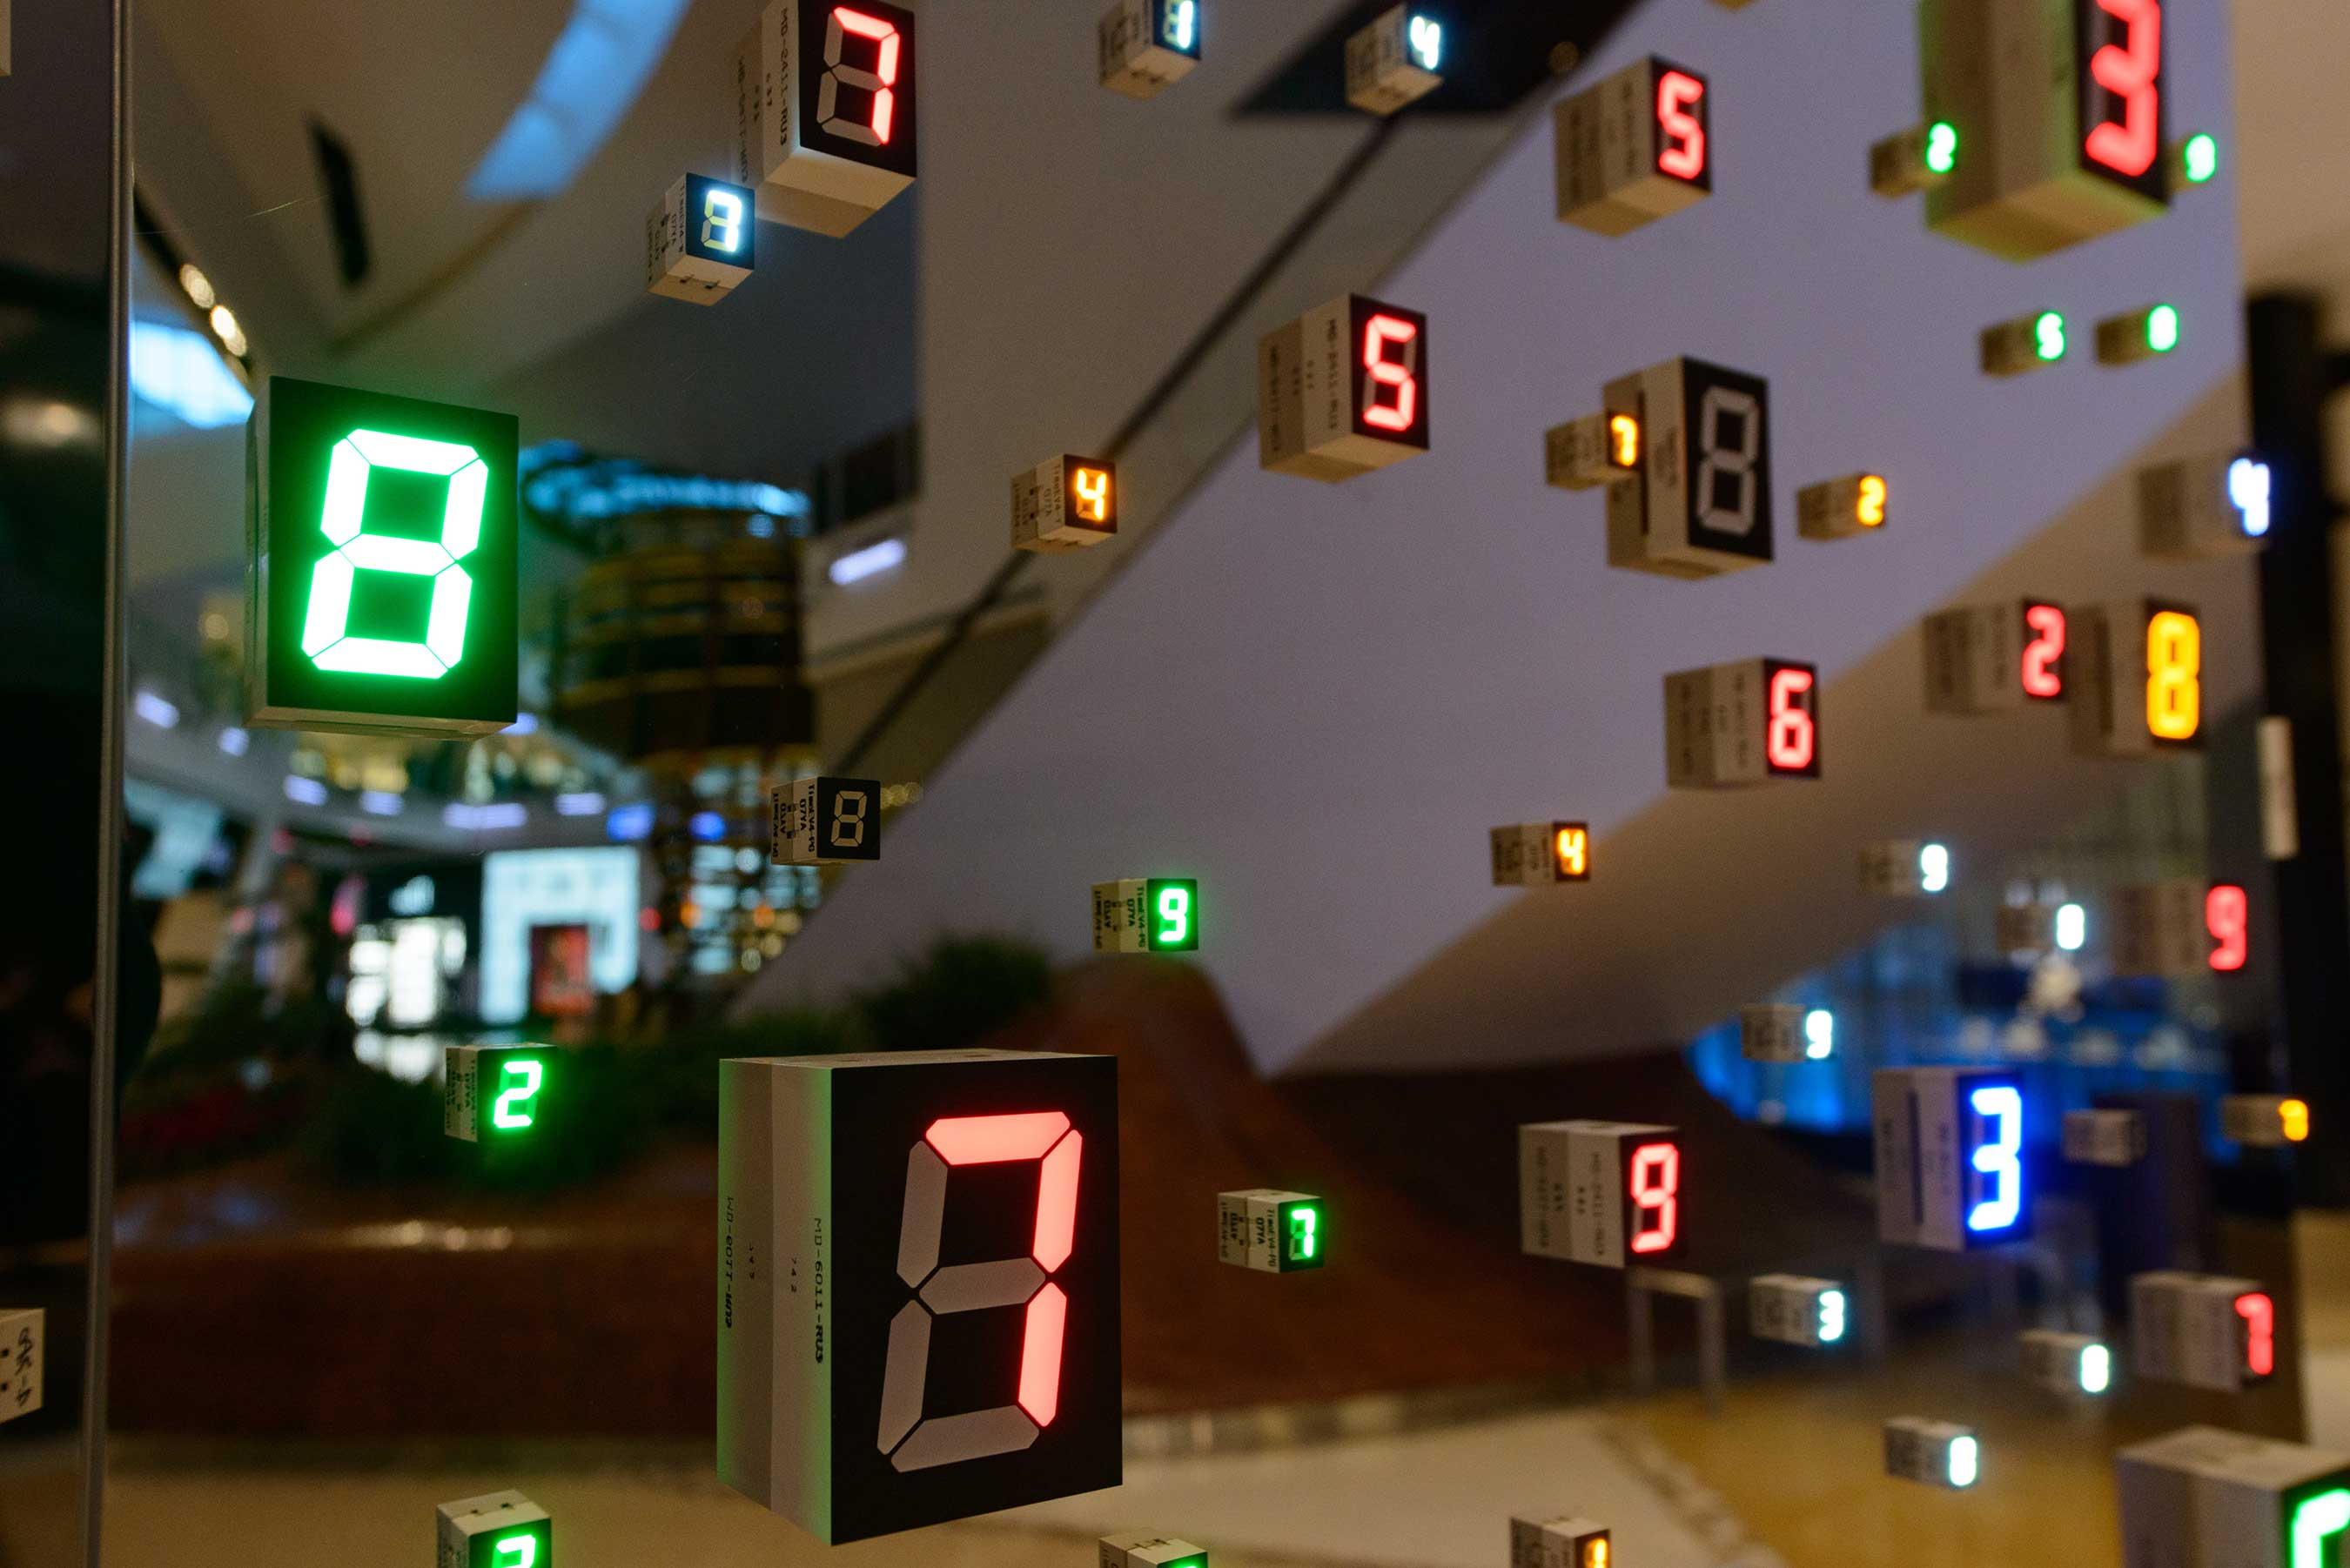 MGM Resorts International welcomes HOTO by renowned Japanese Artist Tatsuo Miyajima, on display in the U.S. for the first time.